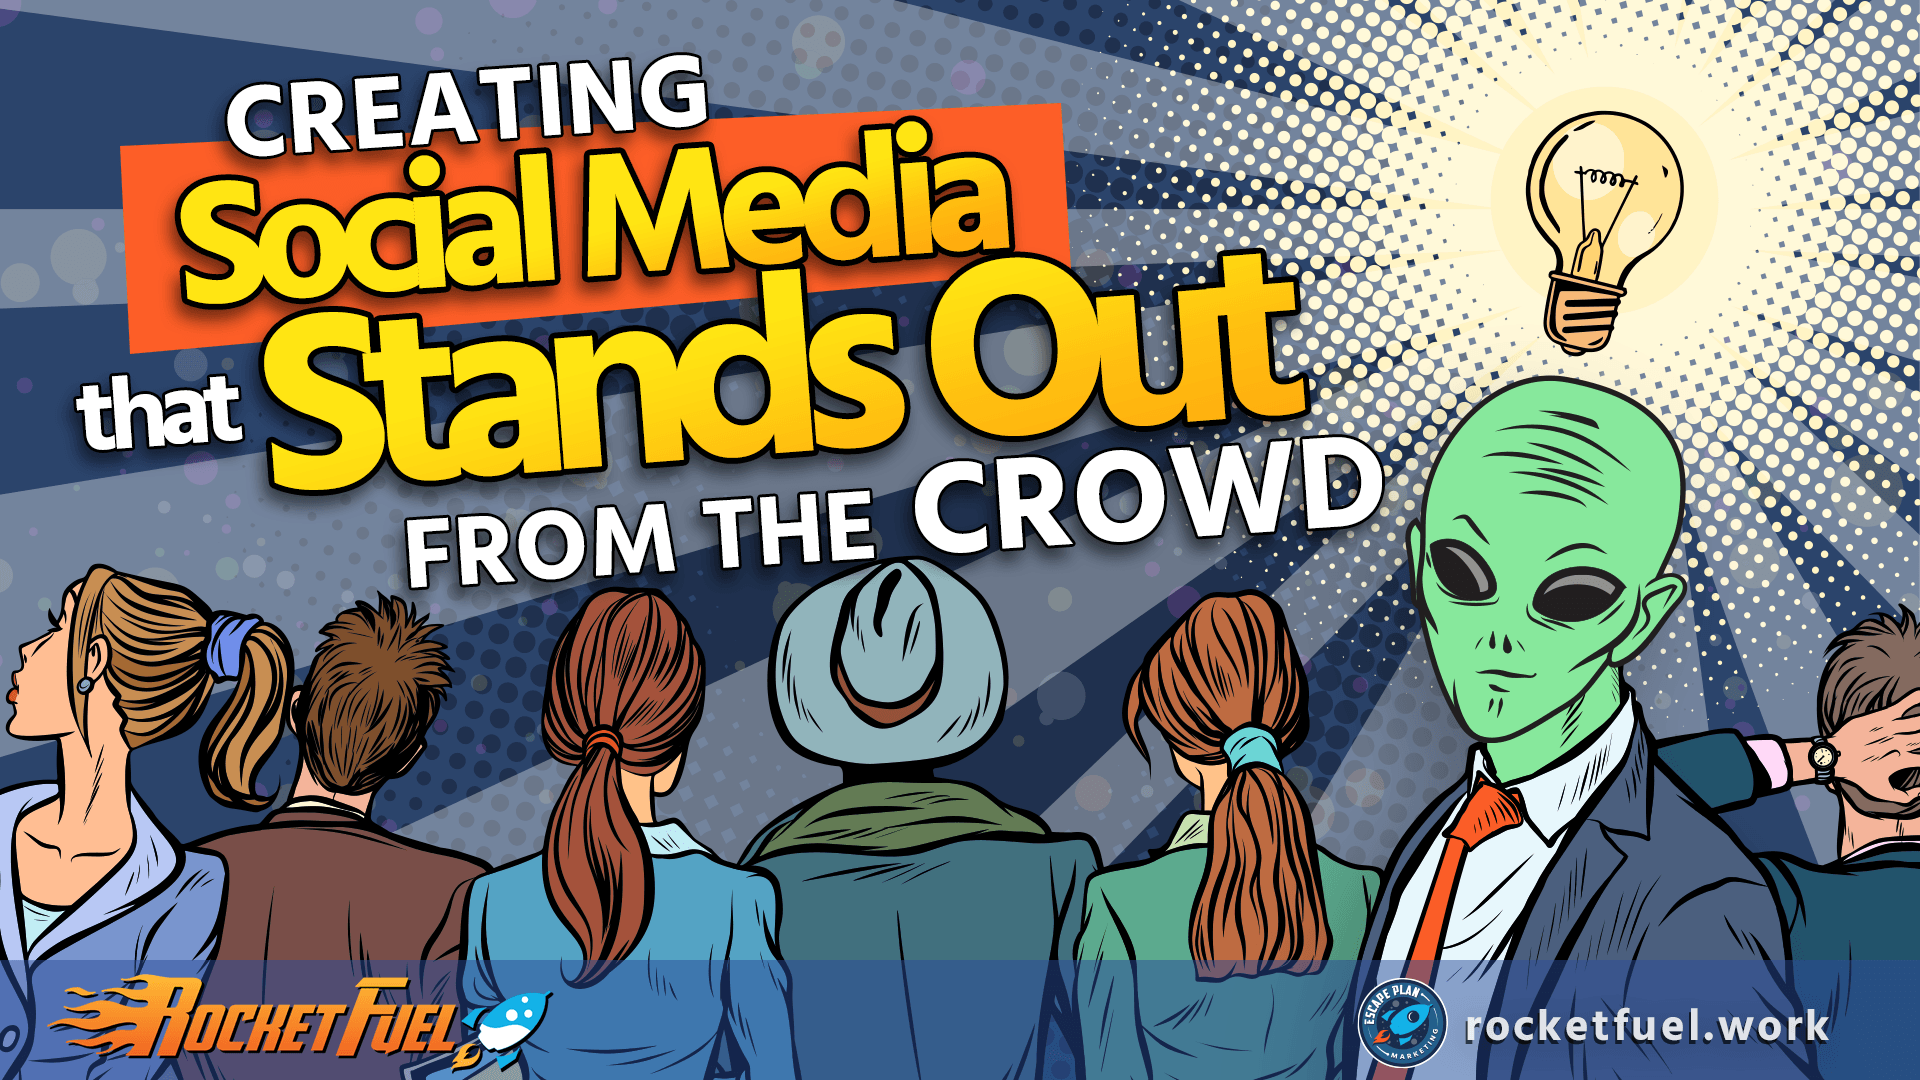 Creating Social Media that Stands Out